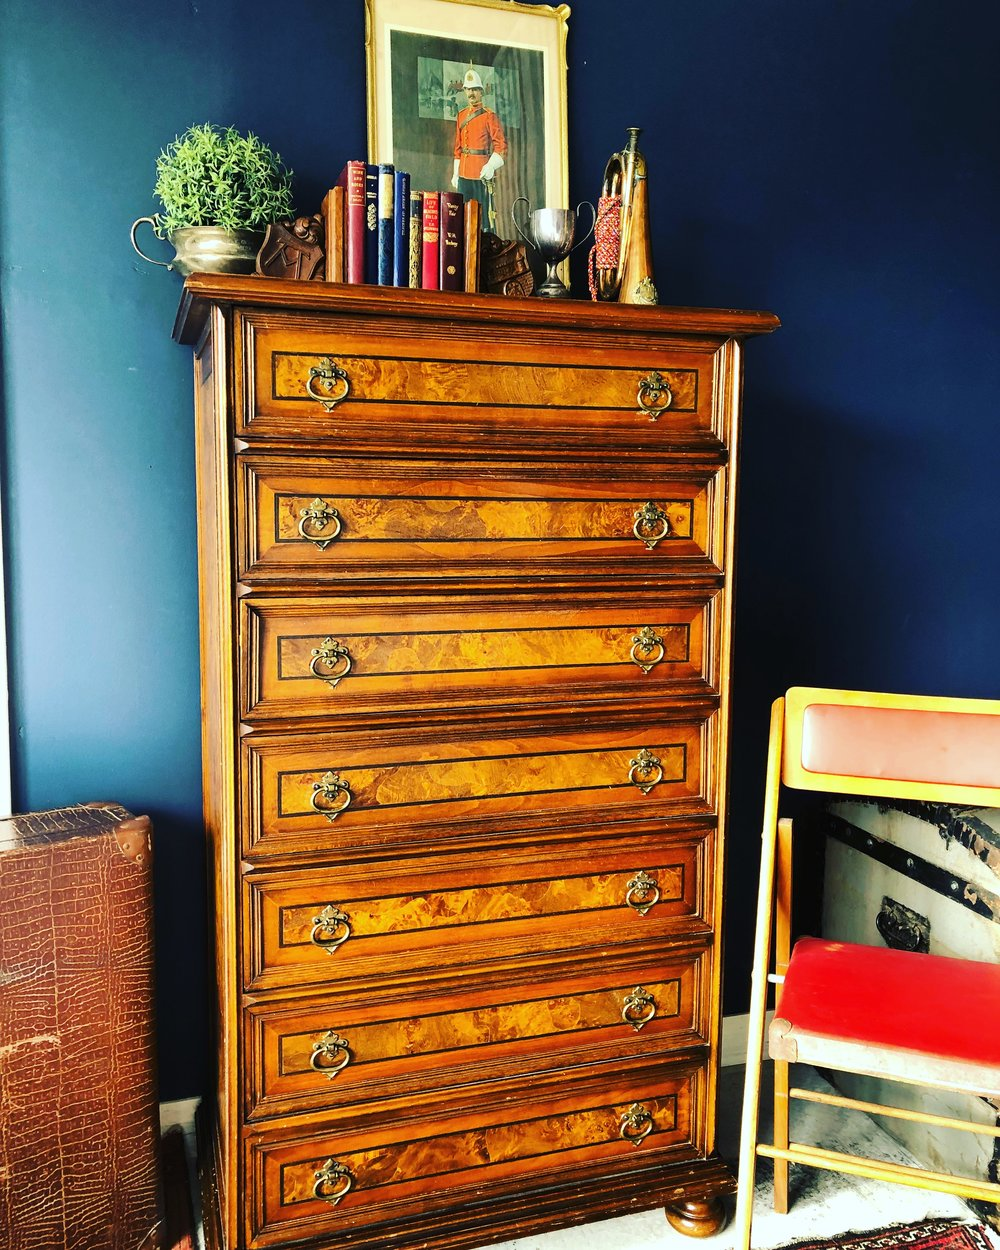 Vintage Tallboy with antique books